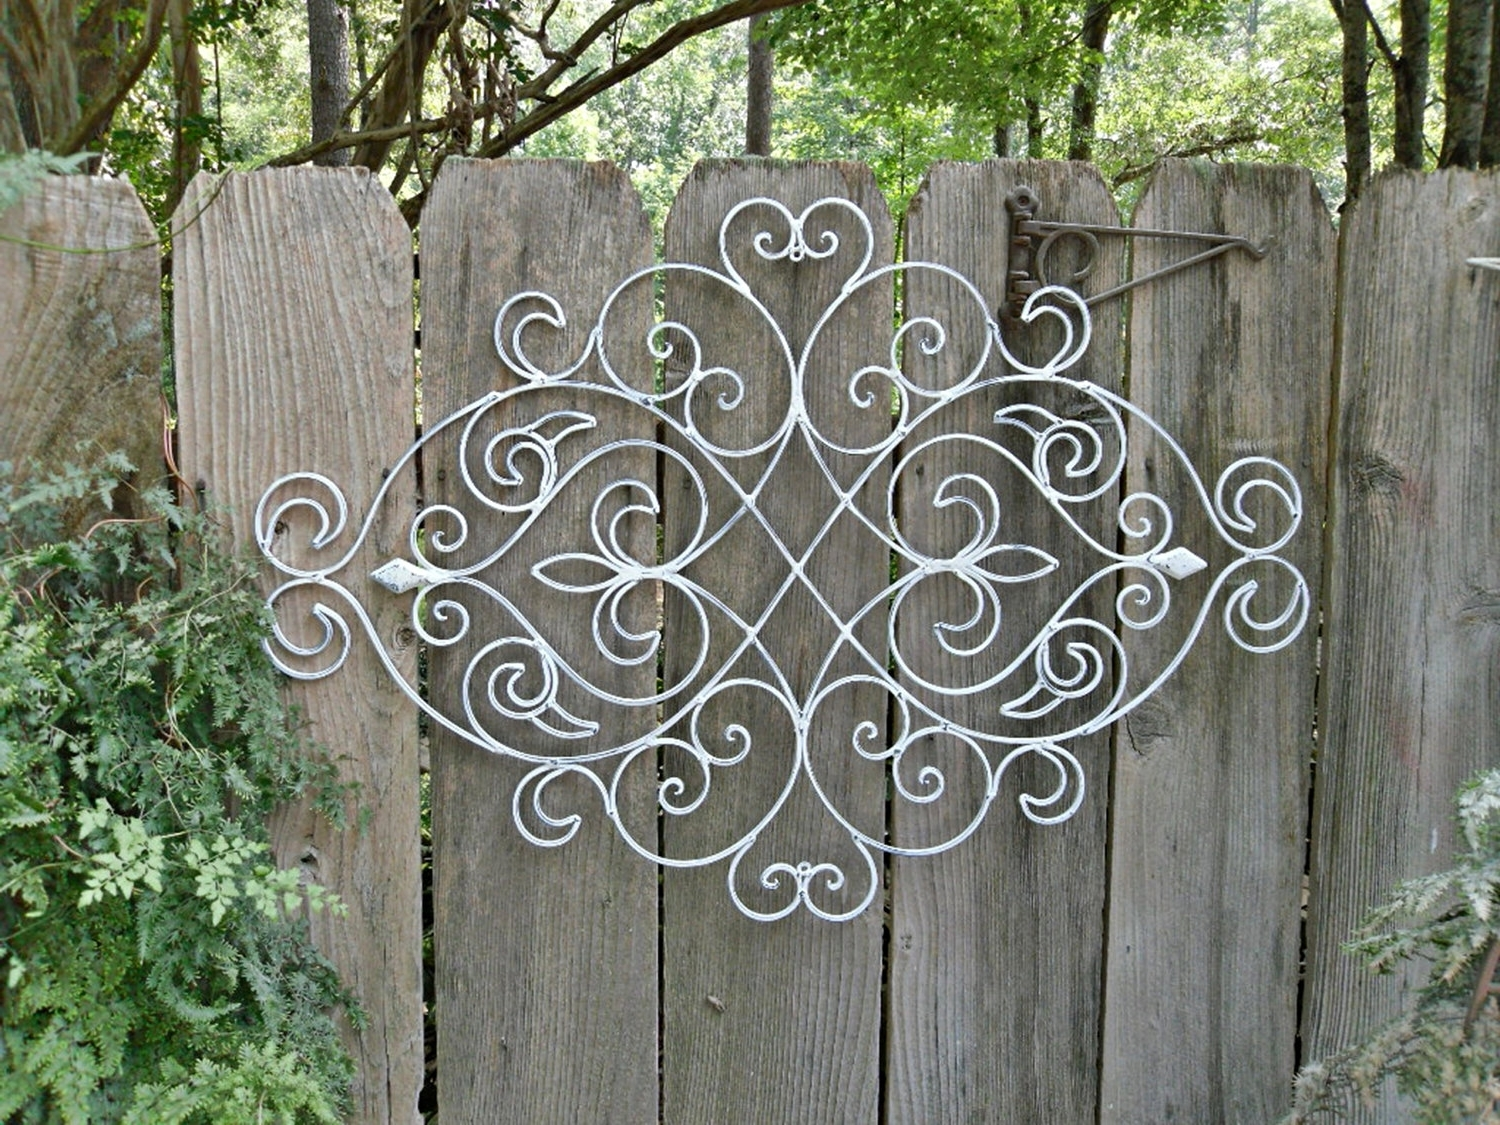 Newest Discount Outdoor Metal Wall Art Decor — Joanne Russo Homesjoanne Pertaining To Metal Wall Art For Outdoors (Gallery 10 of 15)